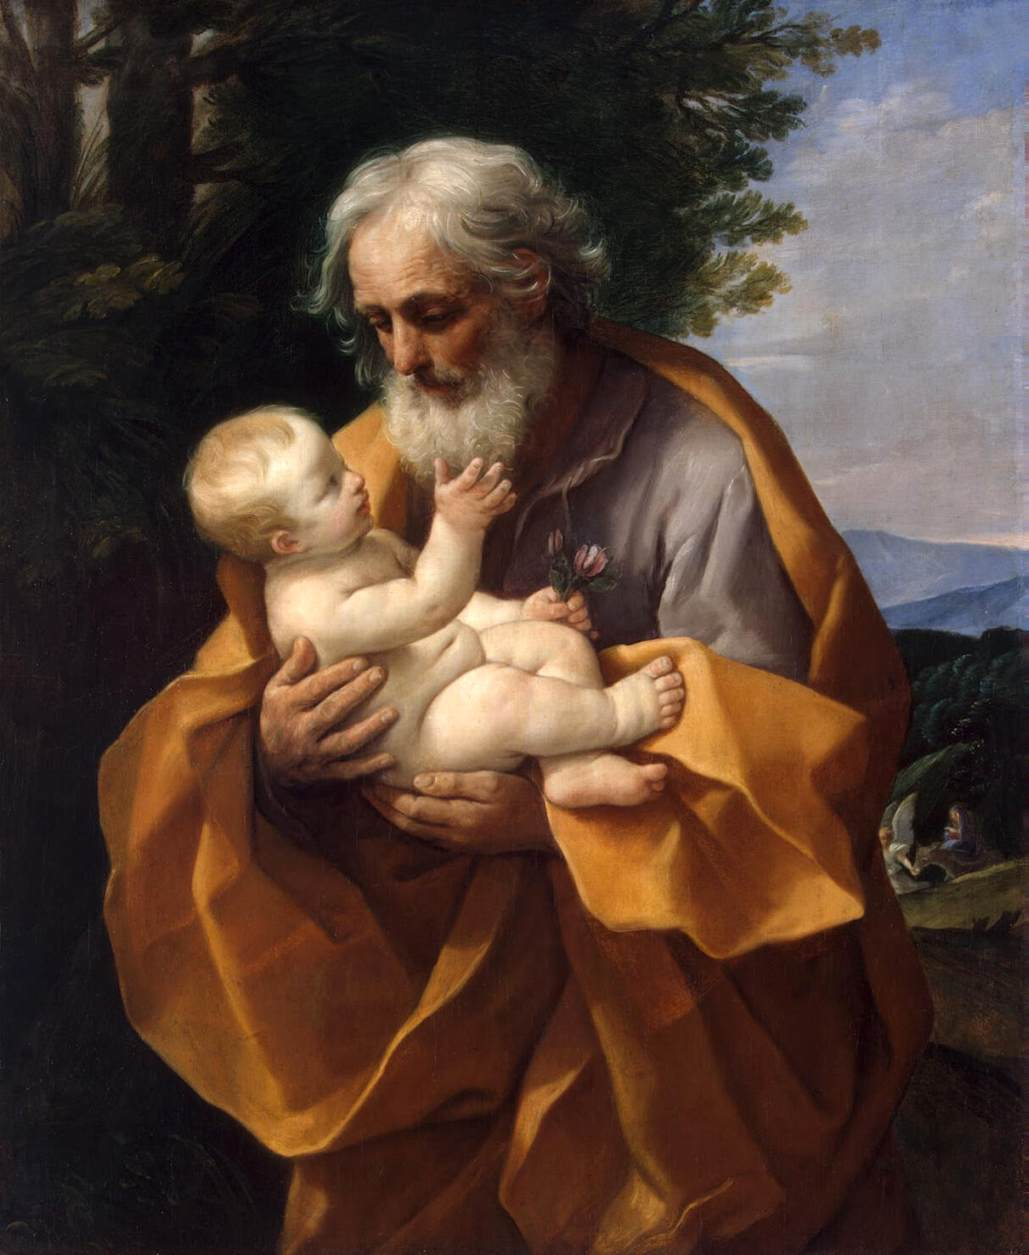 Guido_Reni_-_St_Joseph_with_the_Infant_Jesus_-_WGA19304.jpg